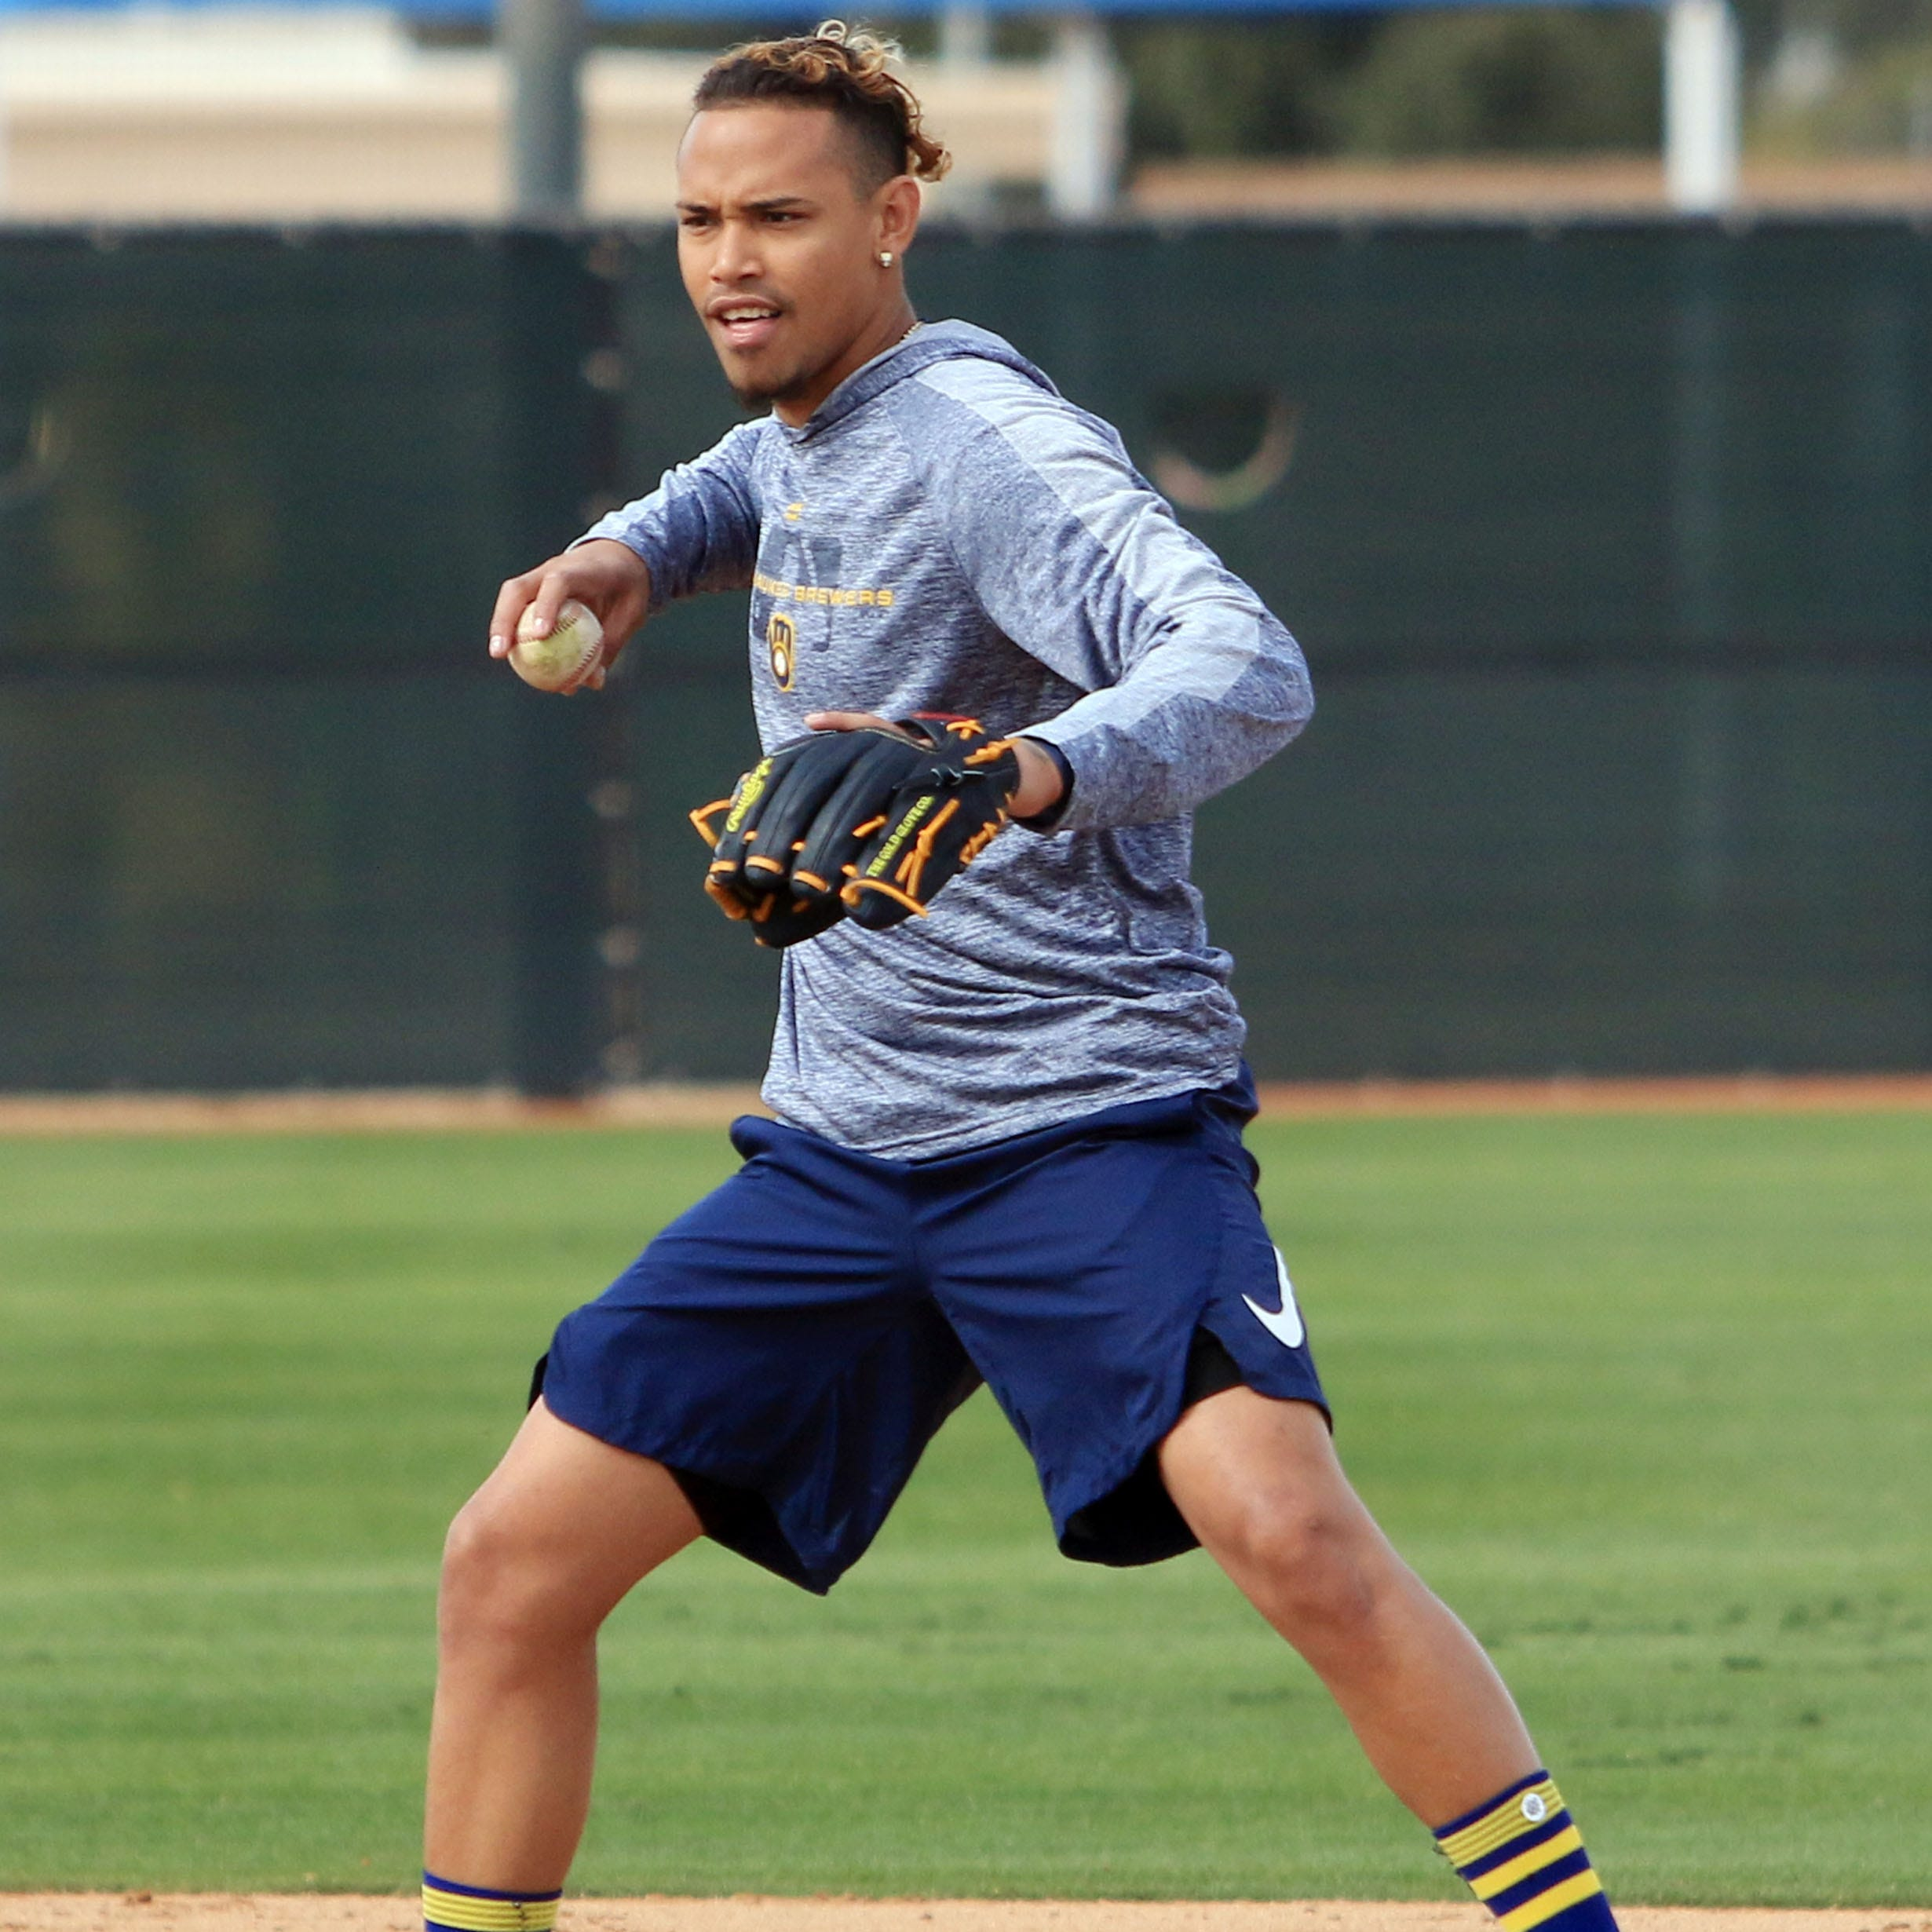 Shortstop: Orlando Arcia aiming to carry strong finish at the plate to 2019